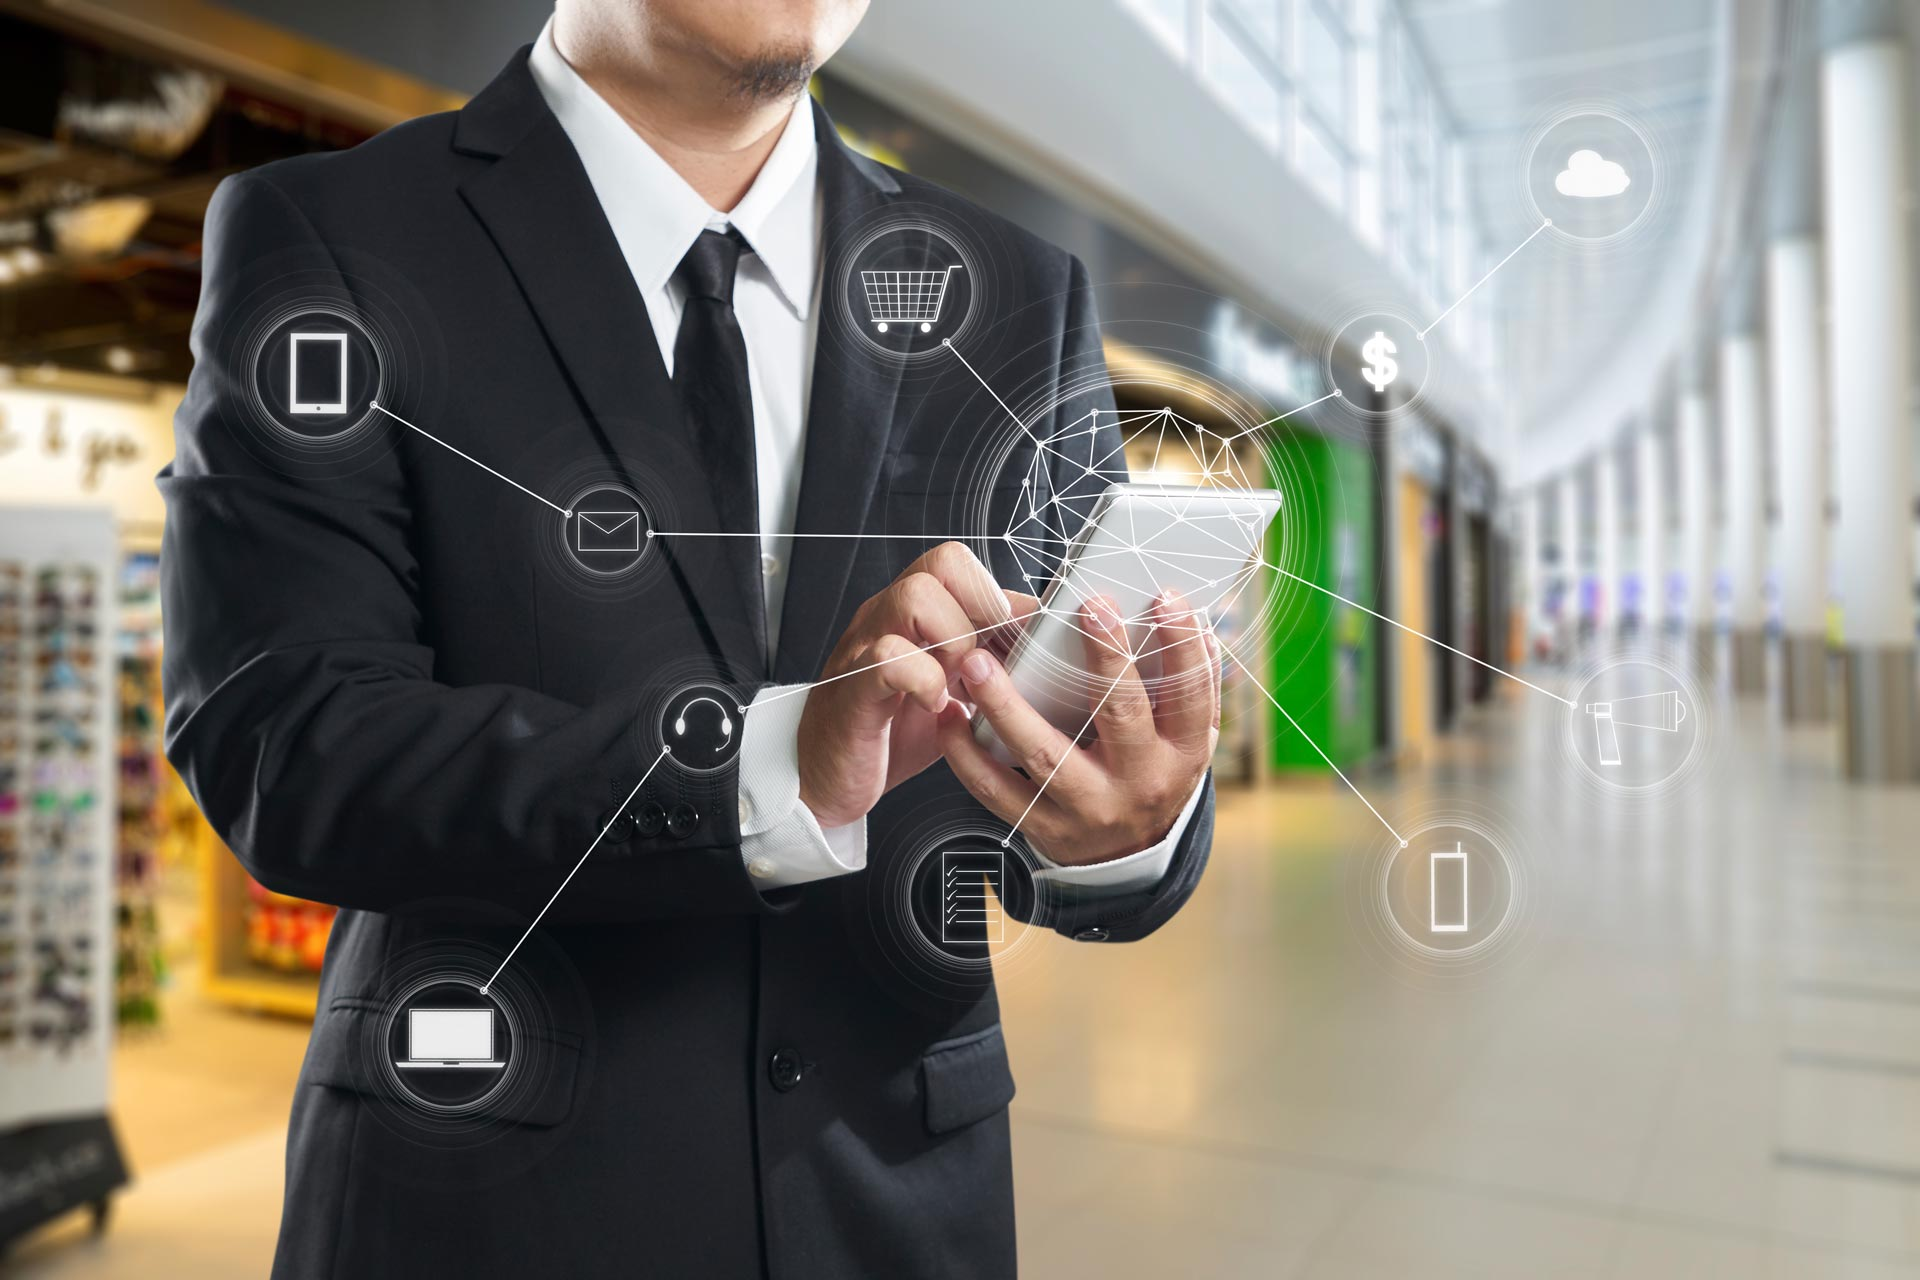 graphicstock-man-using-mobile-payments-online-shopping-and-icon-customer-network-connection-on-screen-m-banking-and-omni-channel_SOGHaiPgol